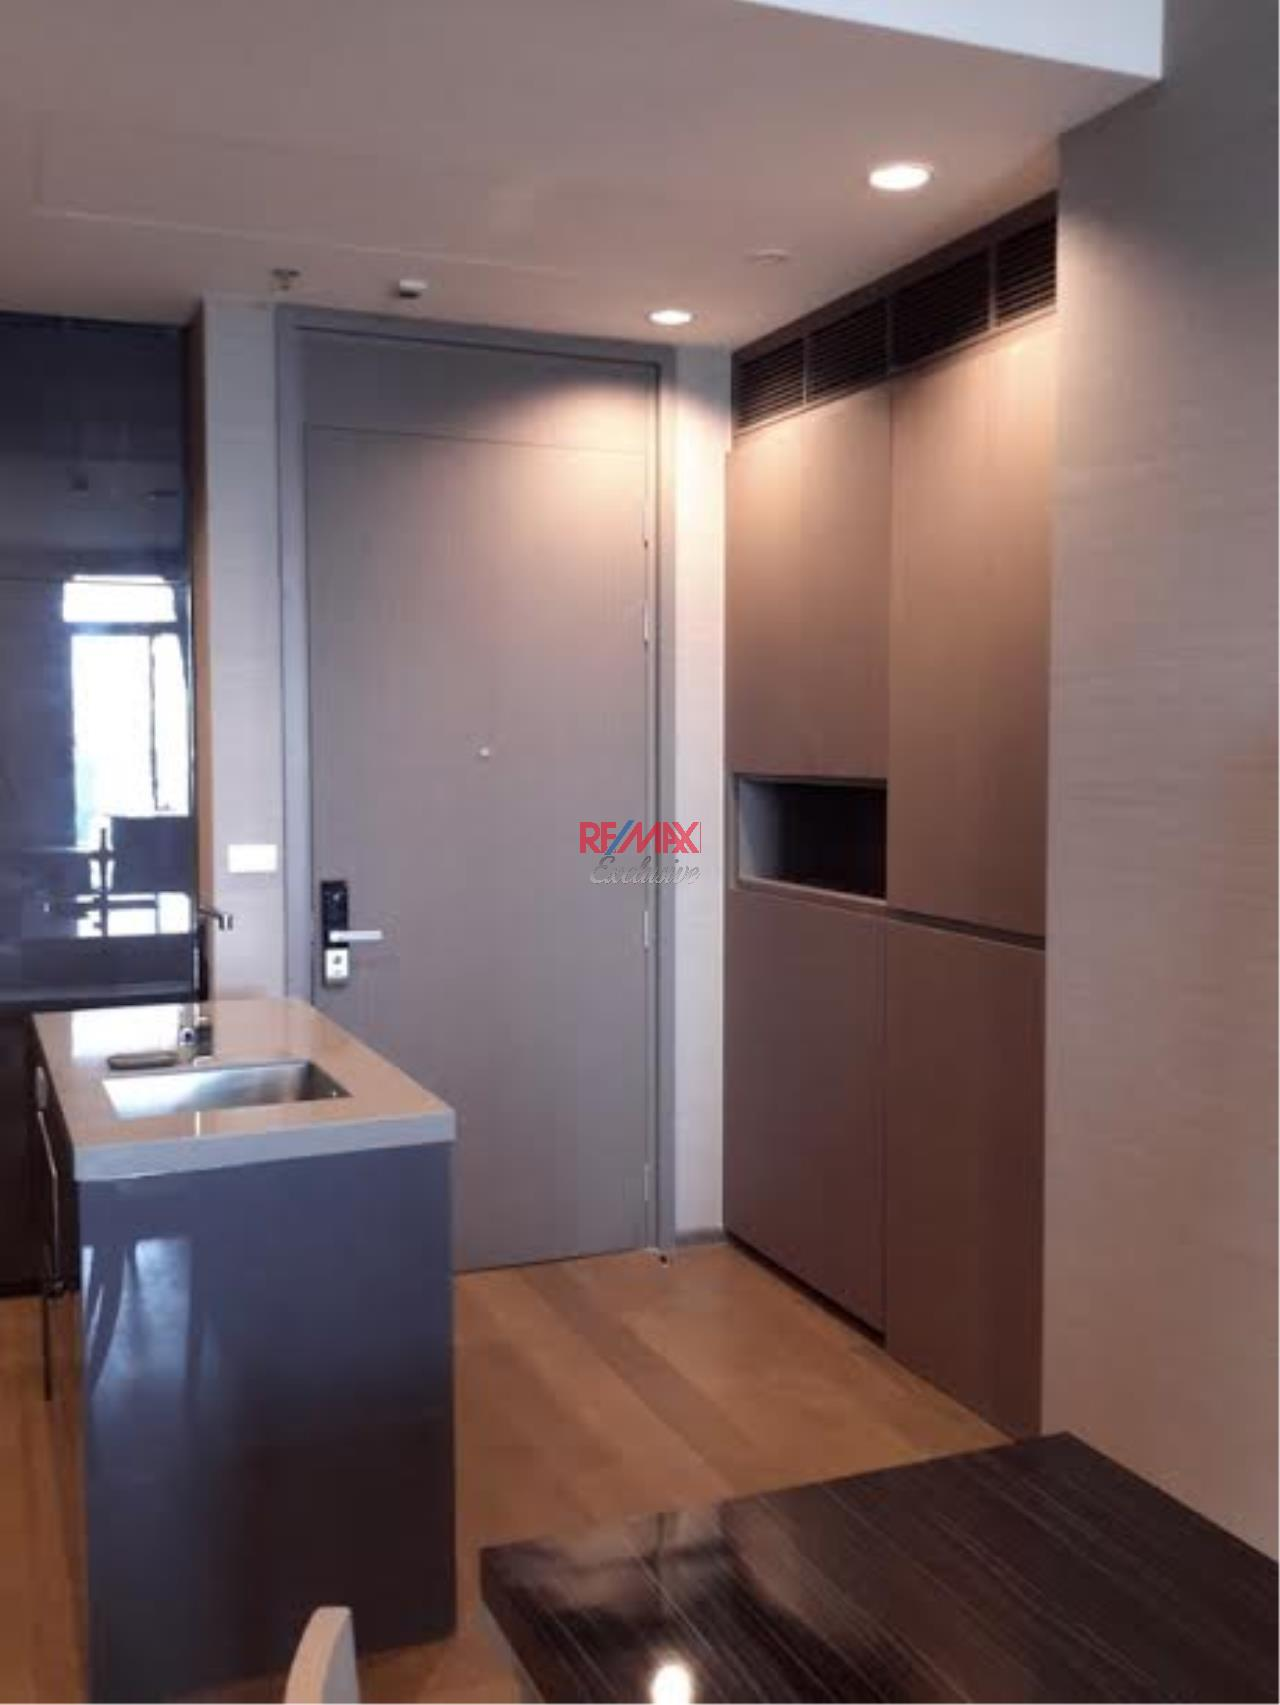 RE/MAX Exclusive Agency's The Diplomat Sathorn, 3 Bedrooms, 2 Bathrooms, Only For Rent 80,000 THB 11